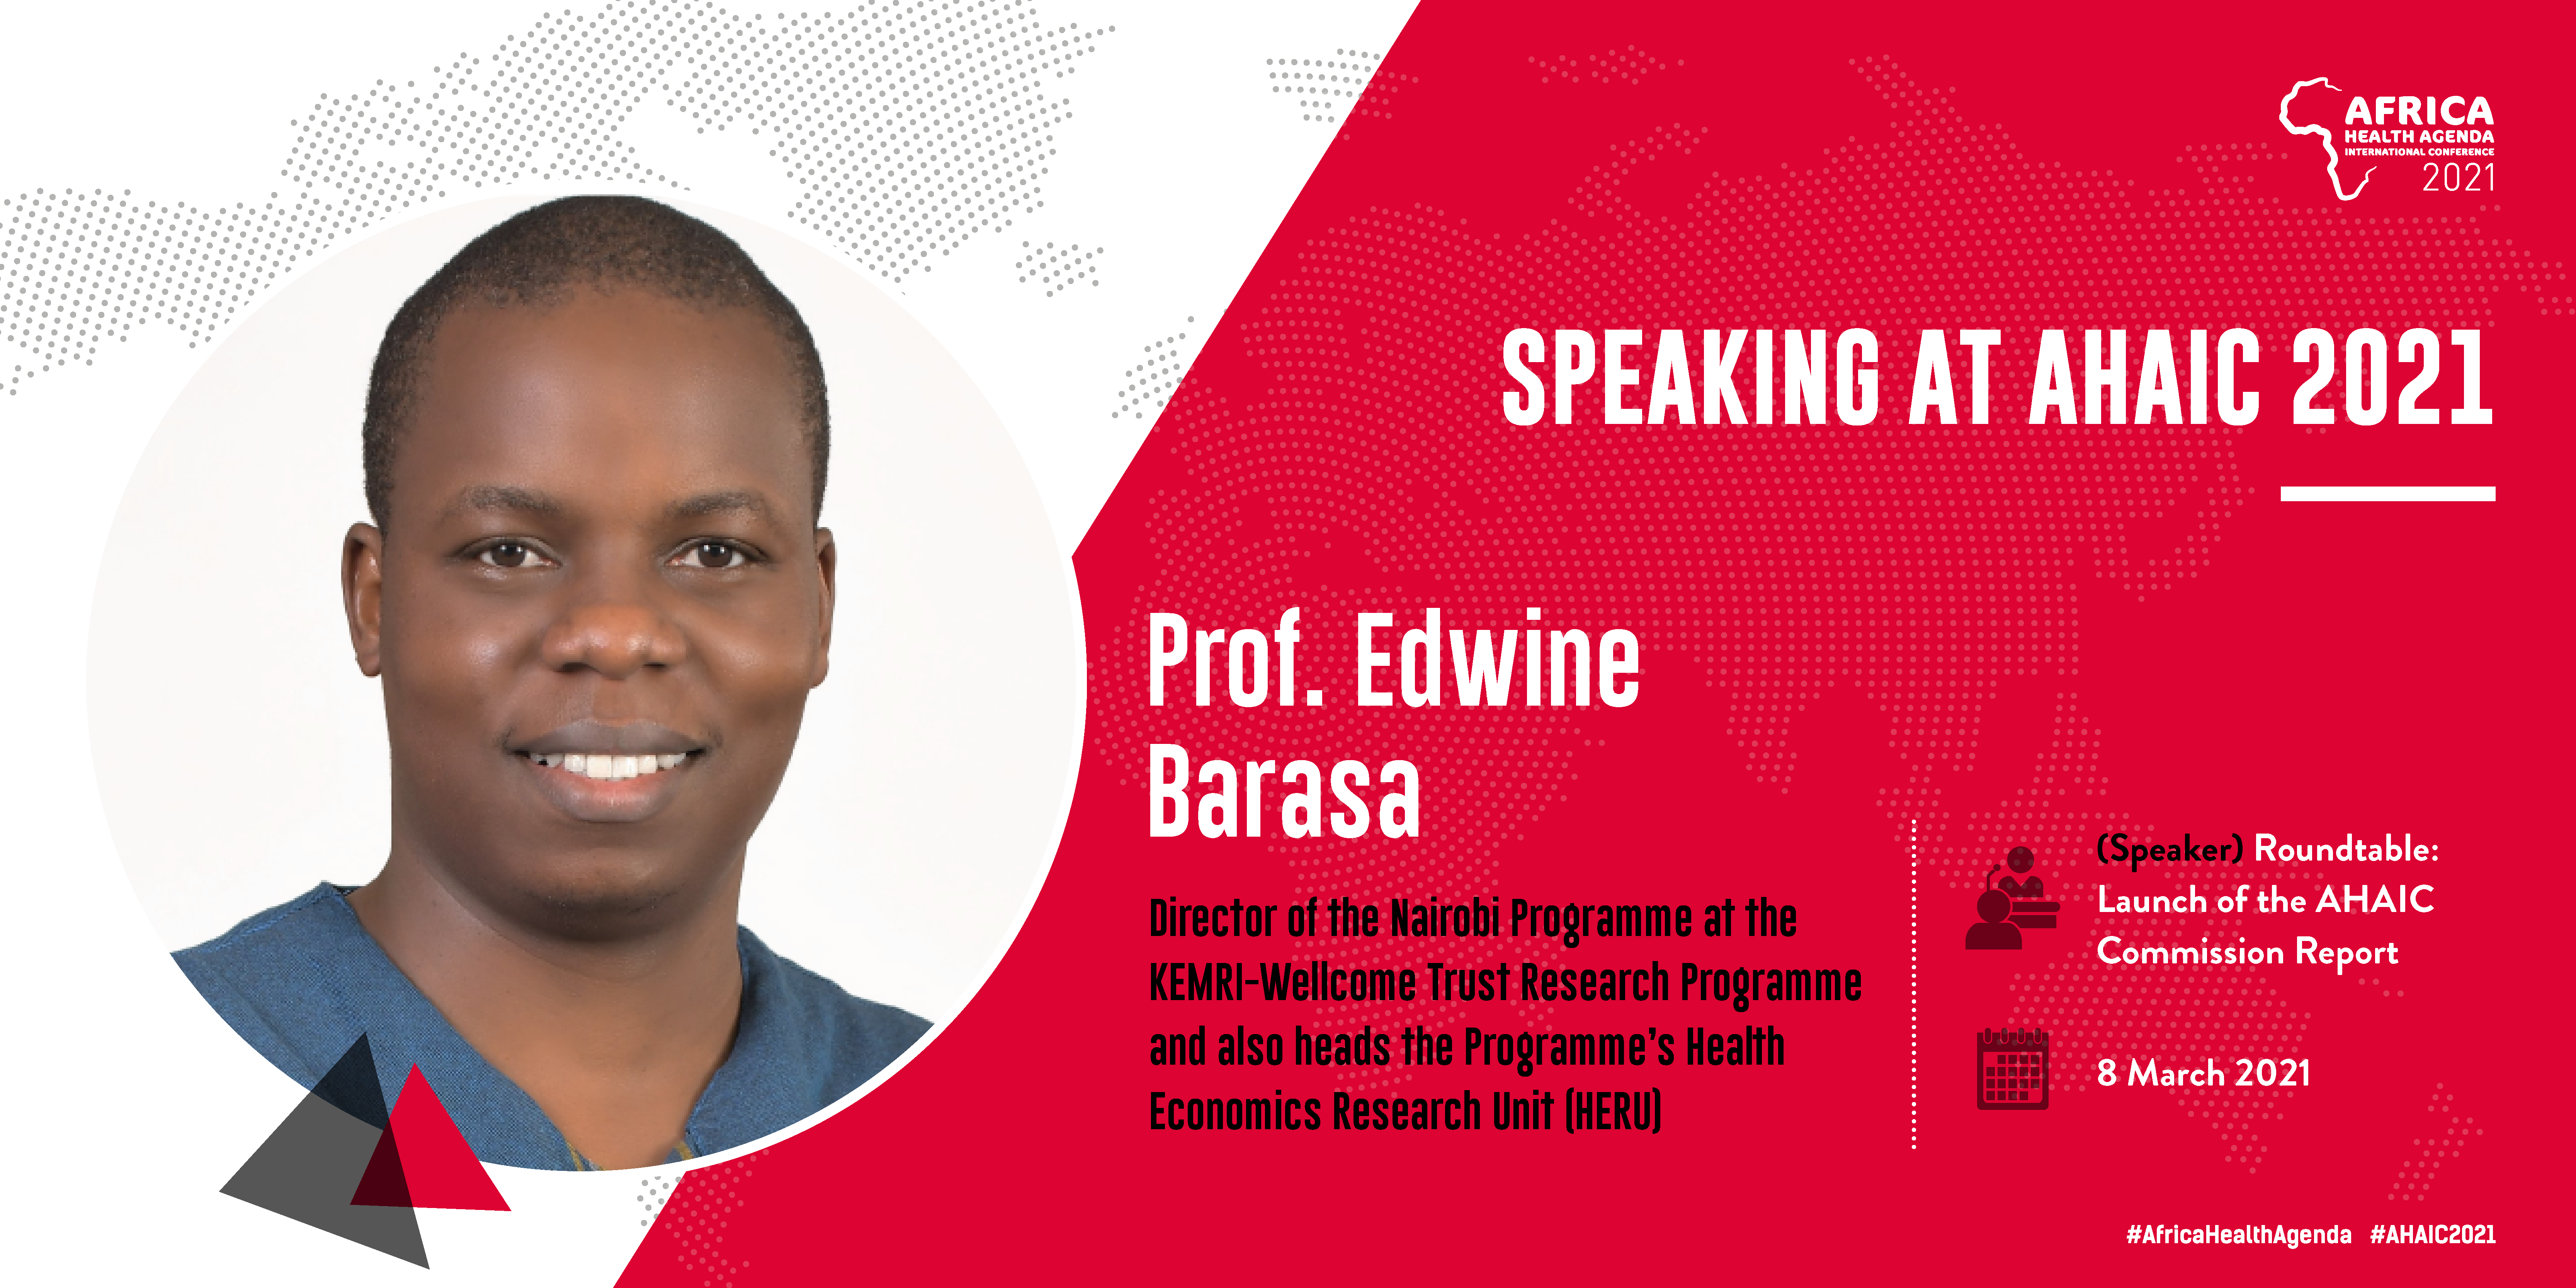 Prof. Edwin Barasa - Speaking at AHAIC 2021 Conference